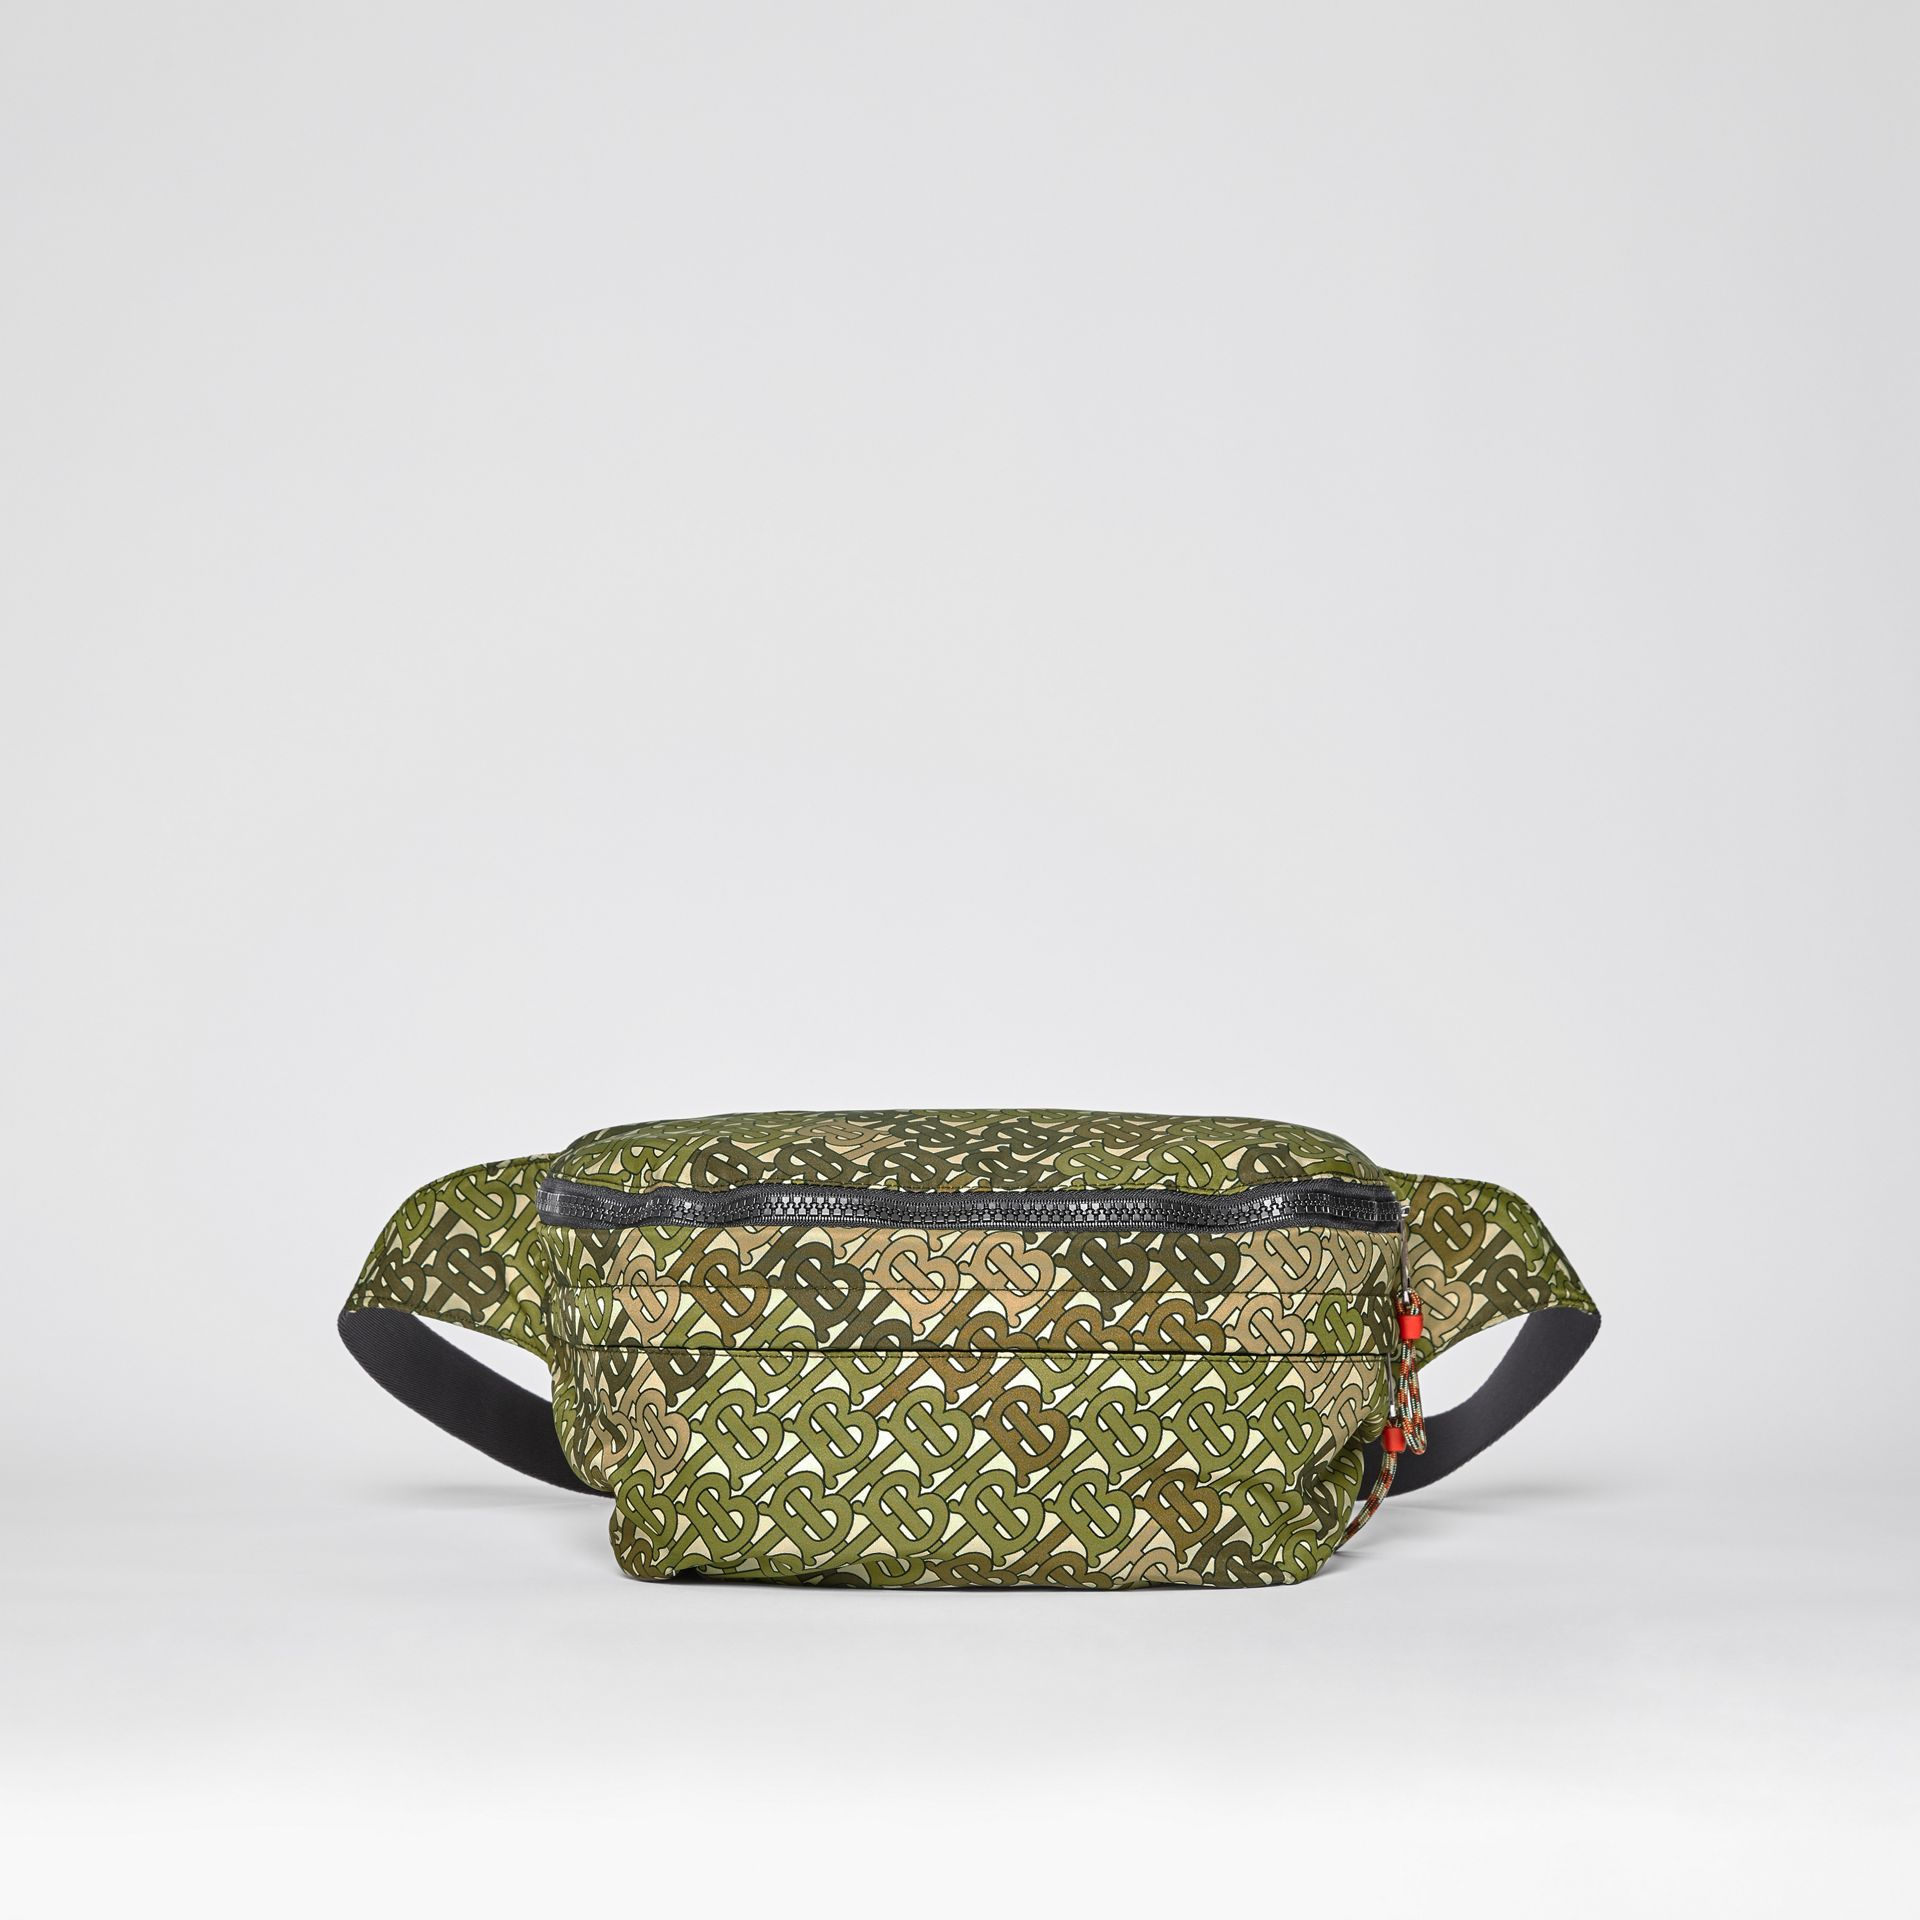 Monogram Print Panel Convertible Bum Bag in Khaki Green - Men | Burberry United States - gallery image 10